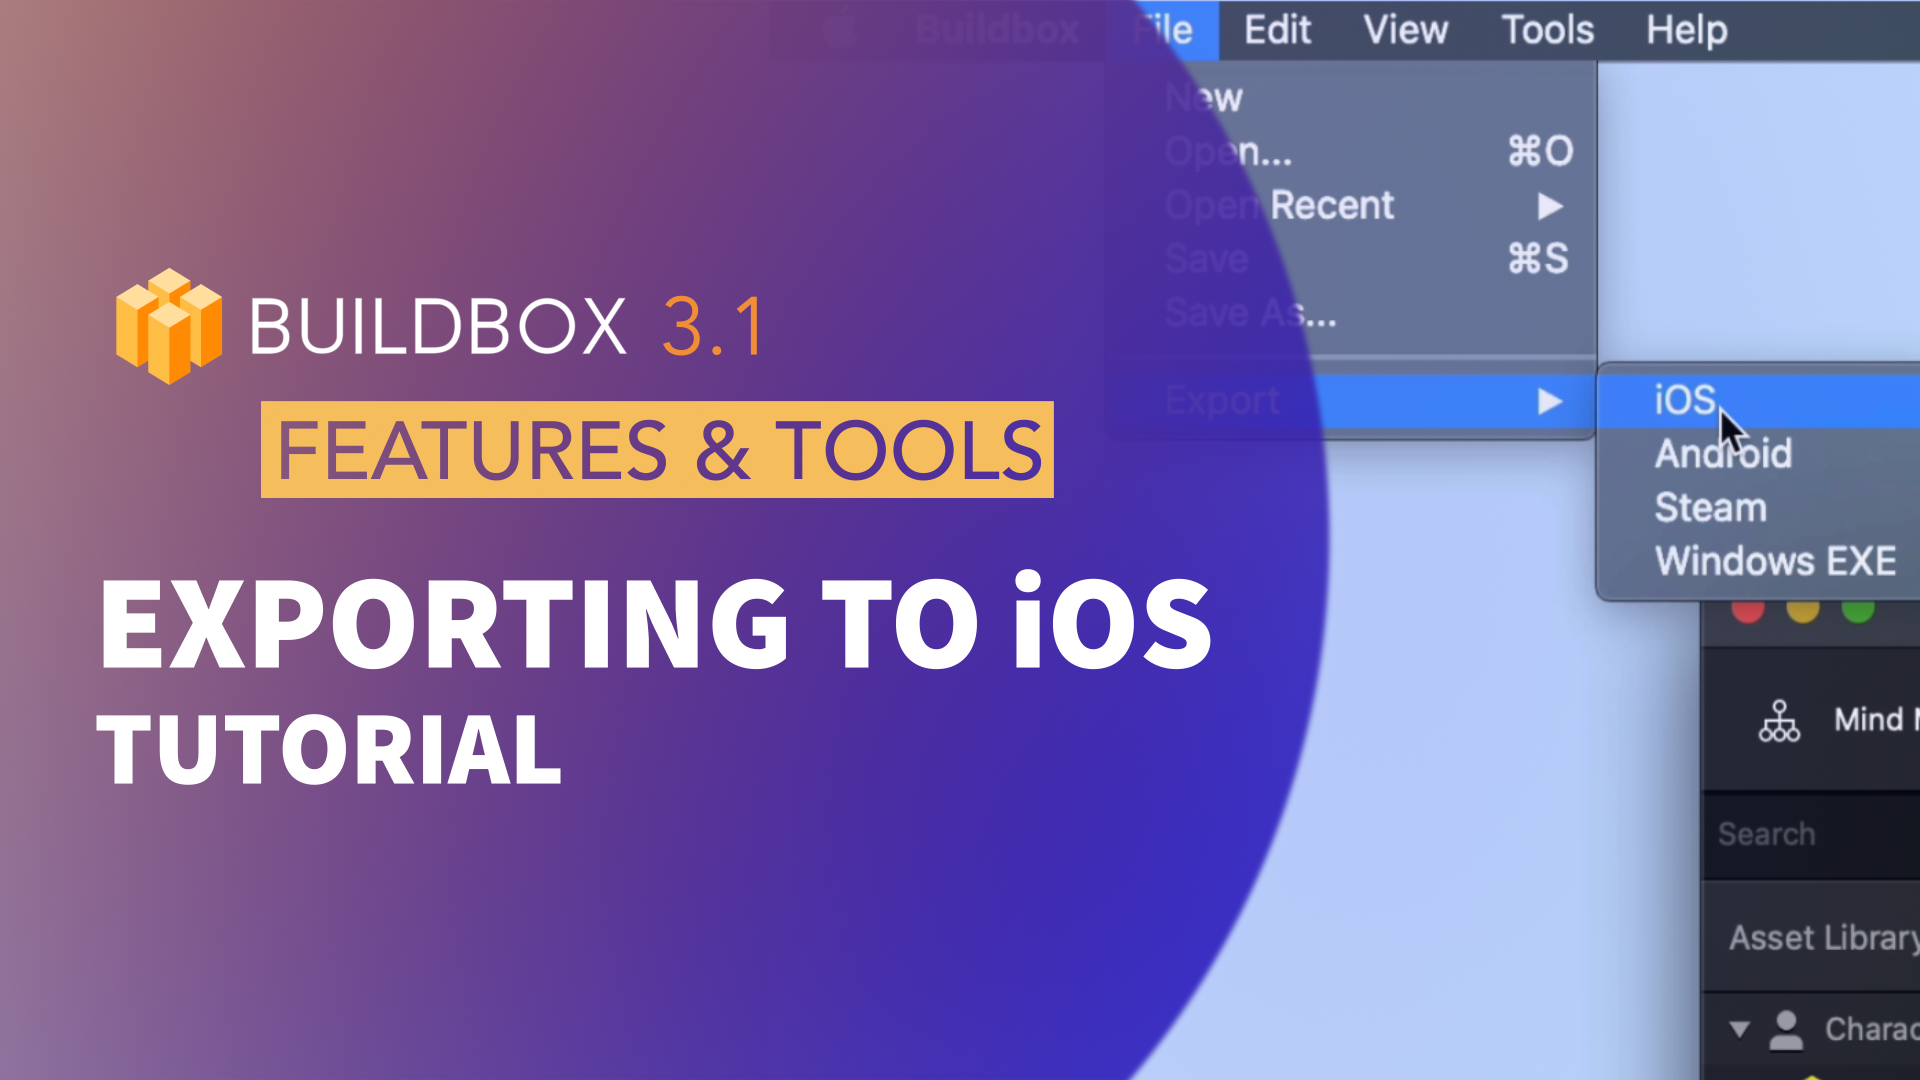 Exporting to iOS